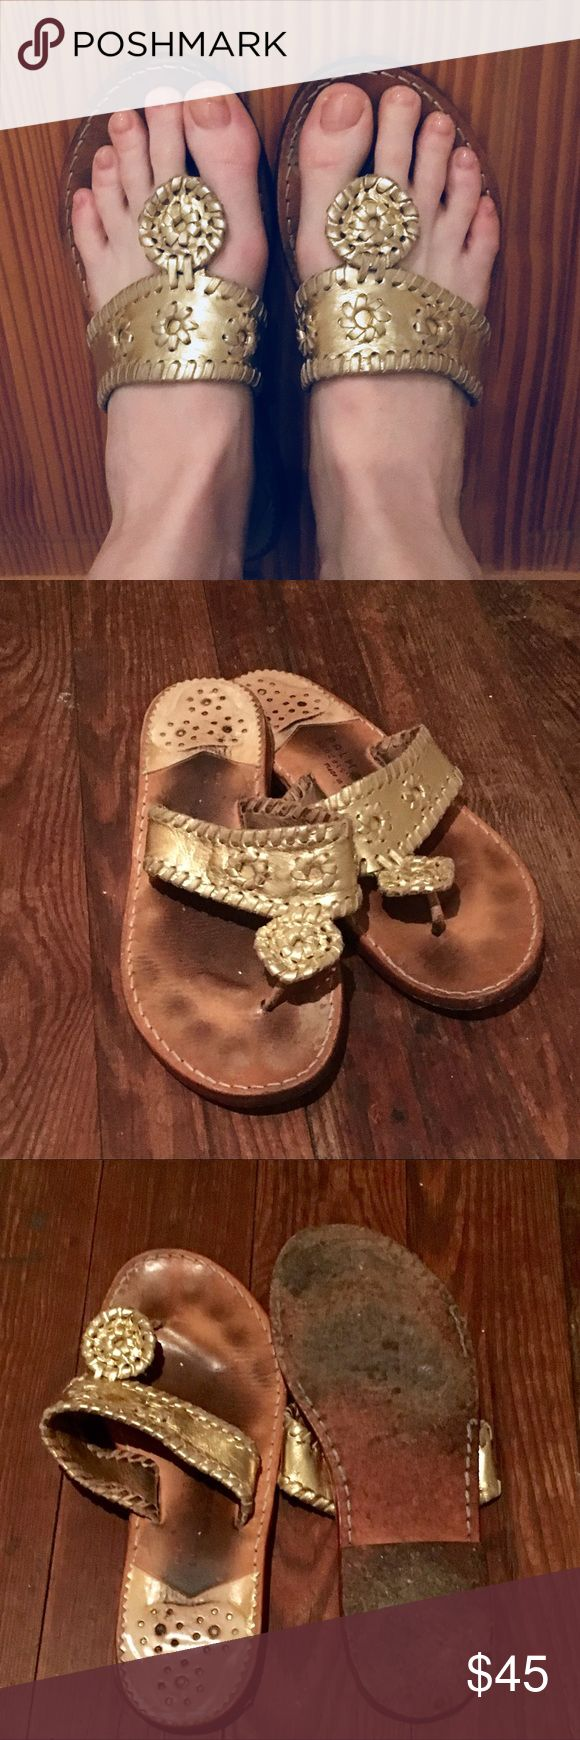 Genuine Palm Beach Sandal Company Sandals! Authentic Palm Beach Sandal Company sandals. Handcrafted. Supple leather. Broken in and comfy. Moderate wear. Palm Beach Sandal Company Shoes Sandals